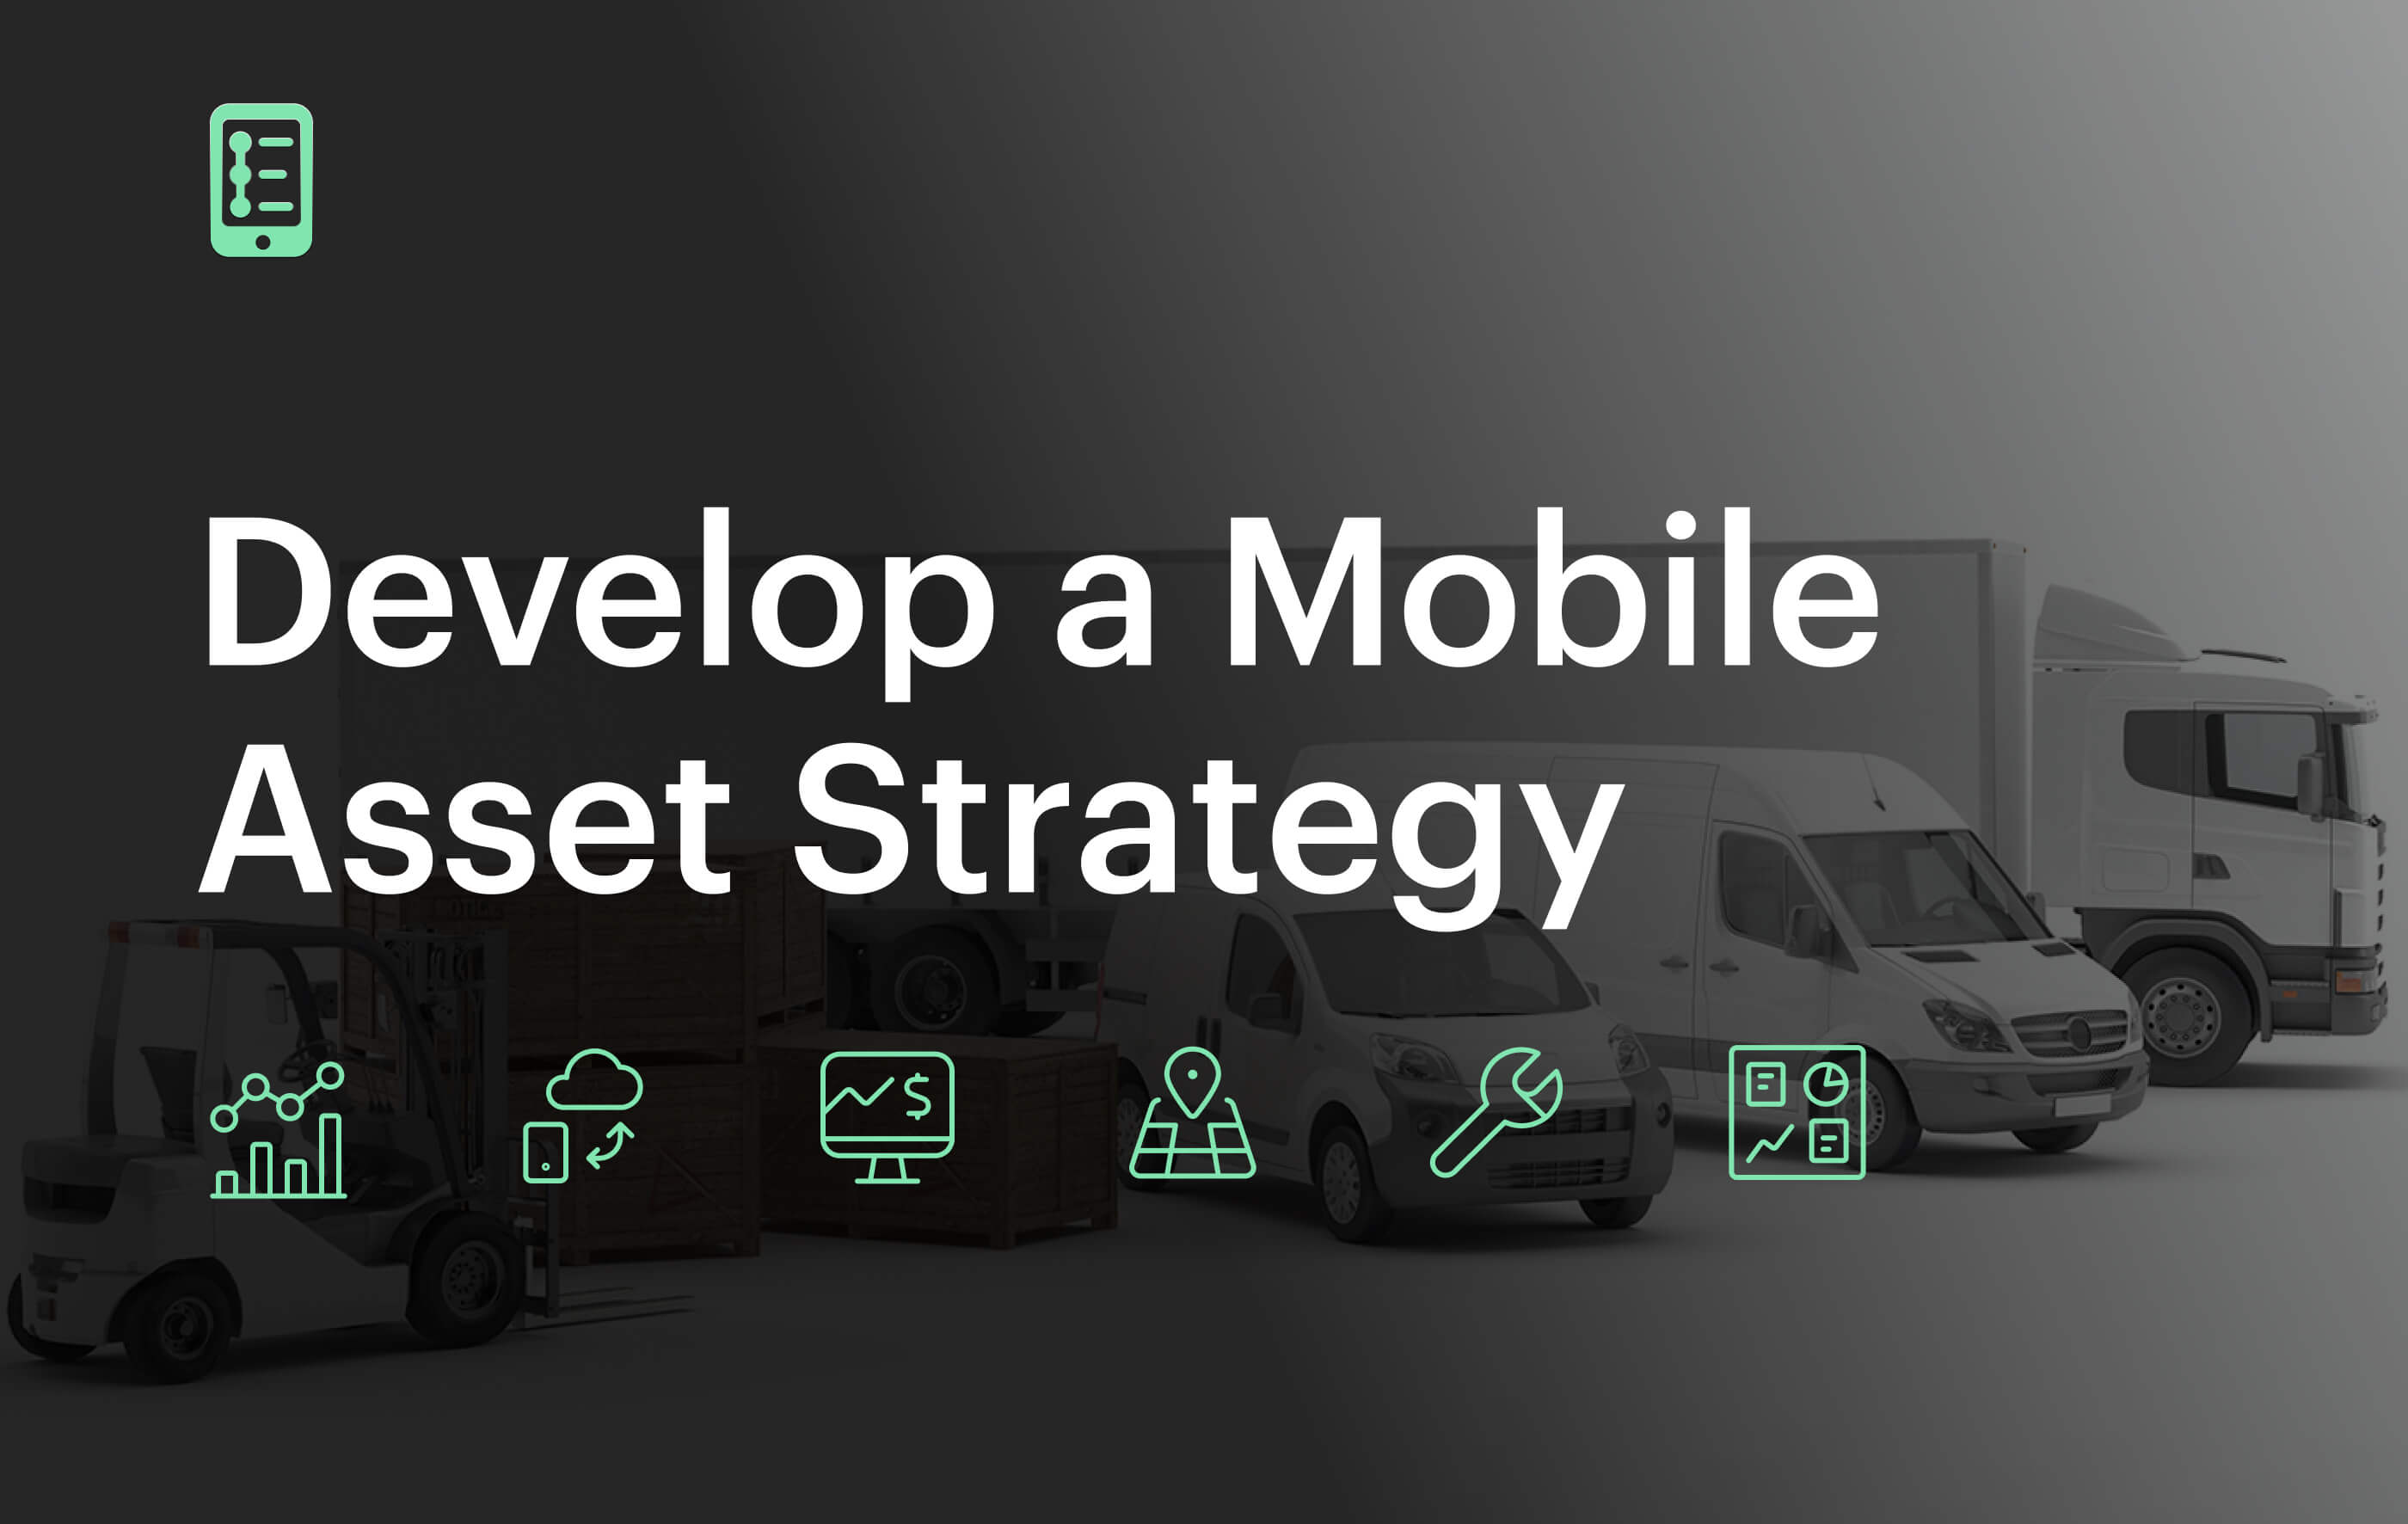 mobile-asset-strategy-visual